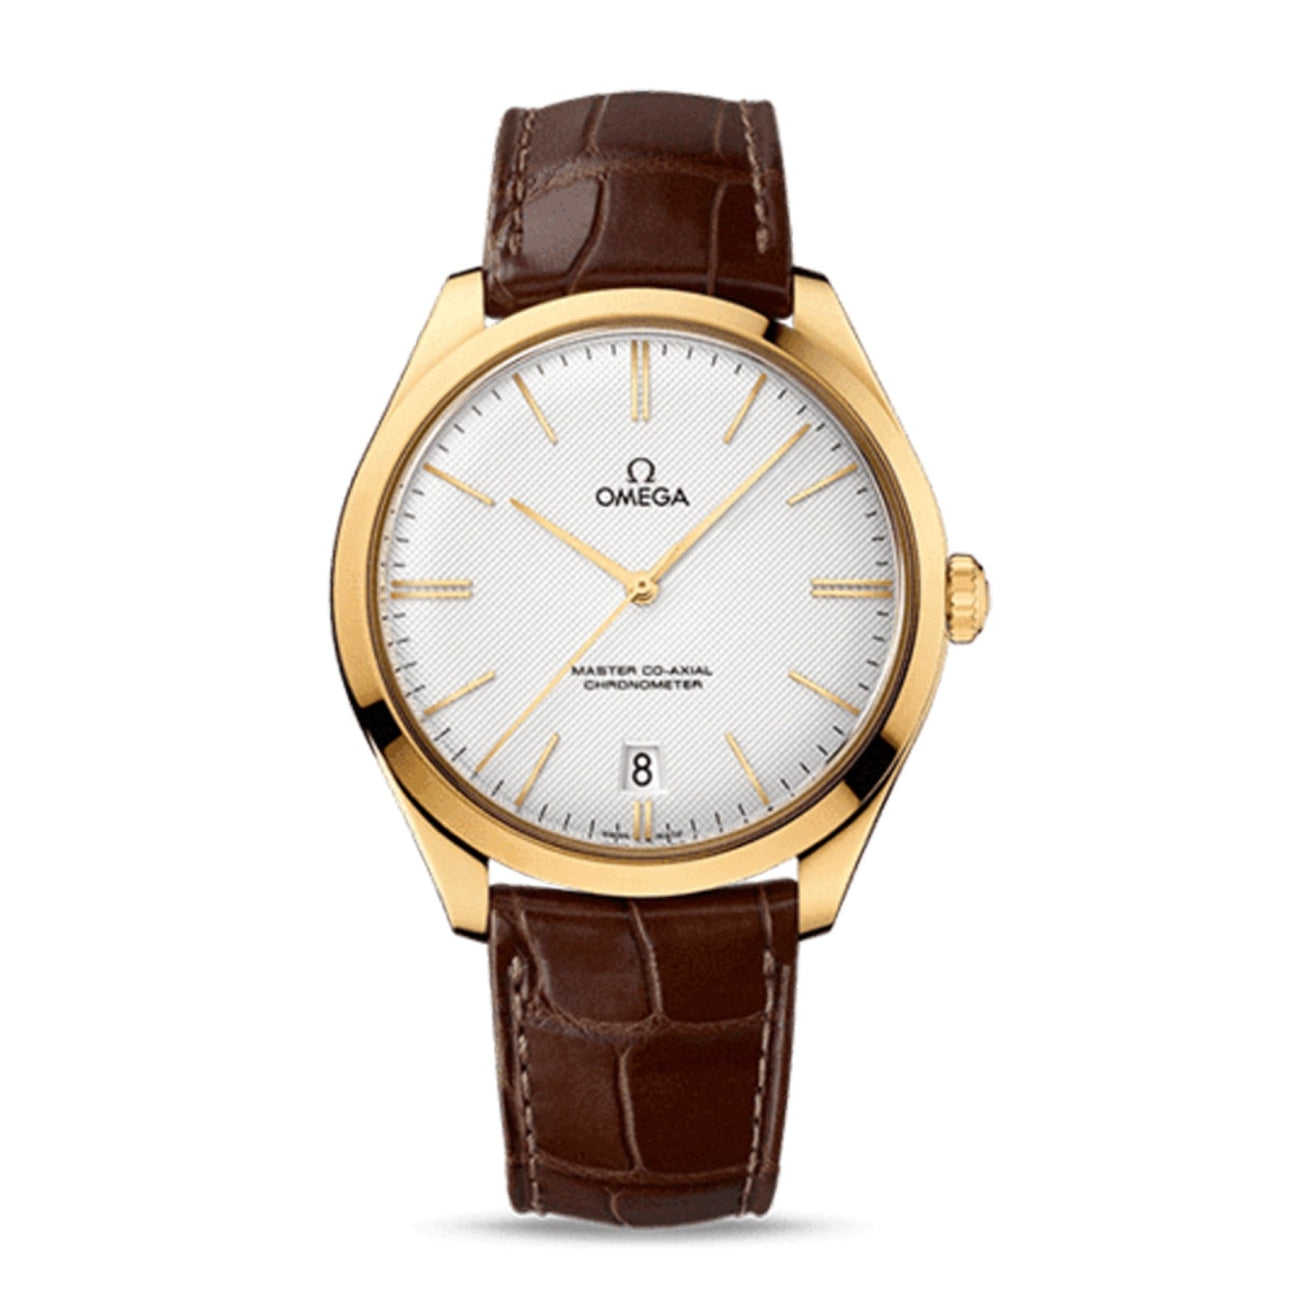 Omega Watches - De Ville Trésor Omega Master Co-Axial 40 MM | Manfredi Jewels